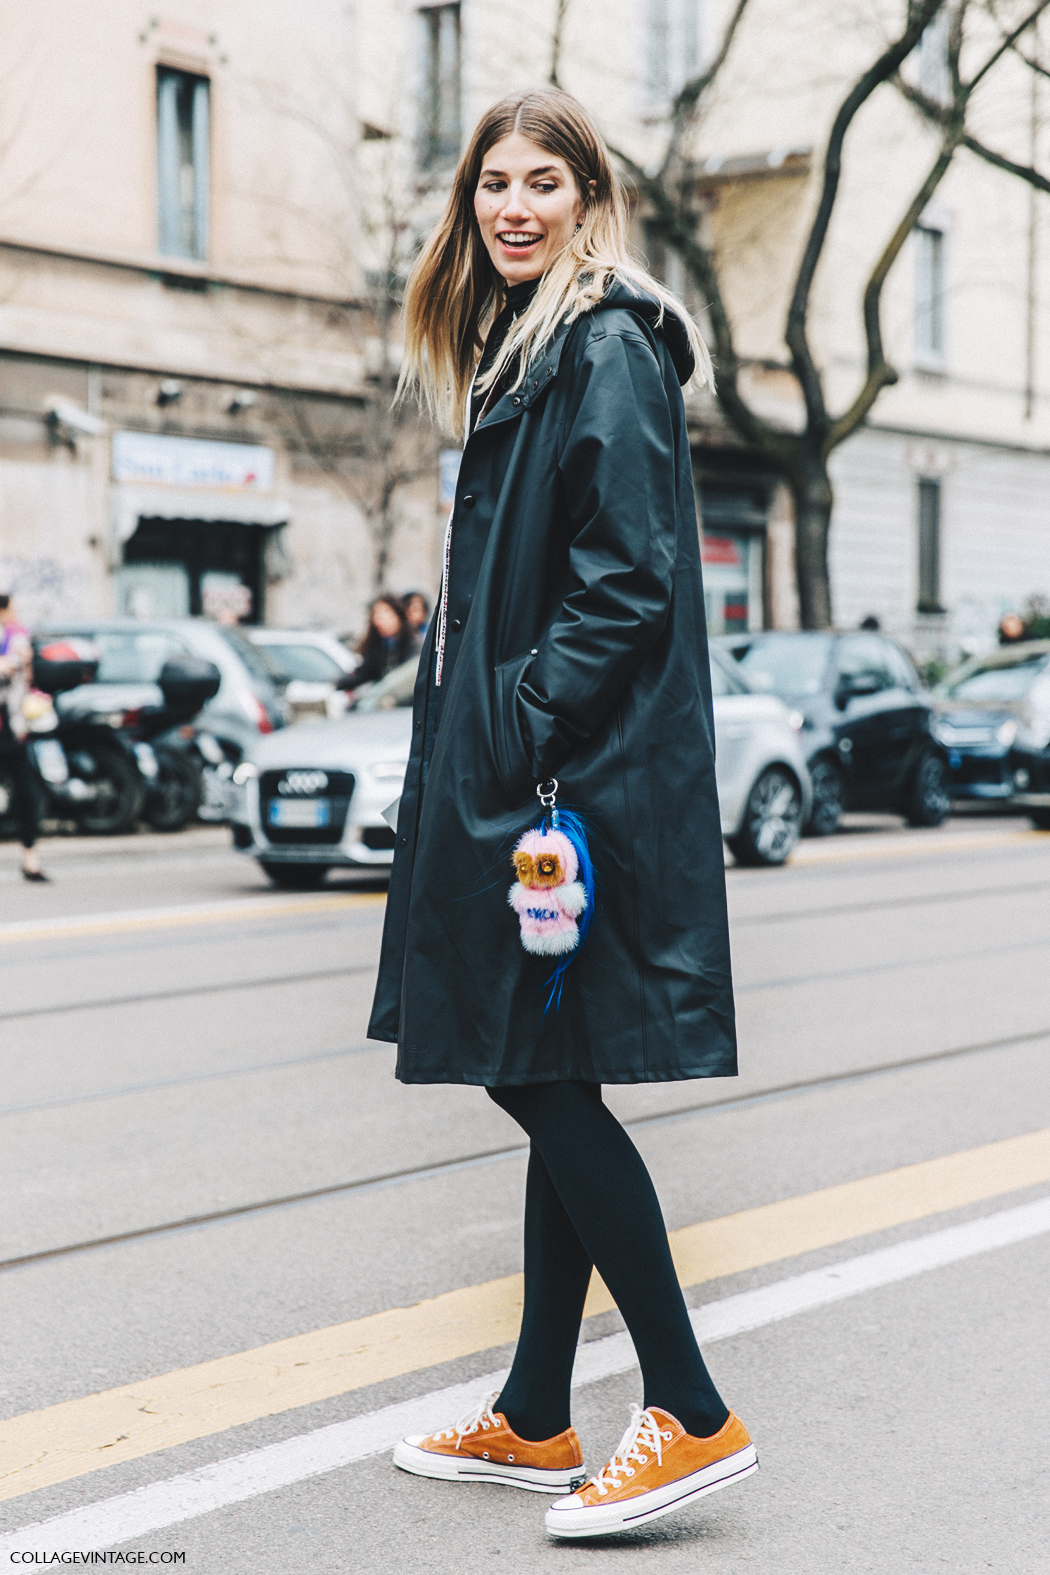 Milan_Fashion_Week_Fall_16-MFW-Street_Style-Collage_Vintage-Veronika_Heilbrunner-Rainy_Coat-Converse-Fendi-